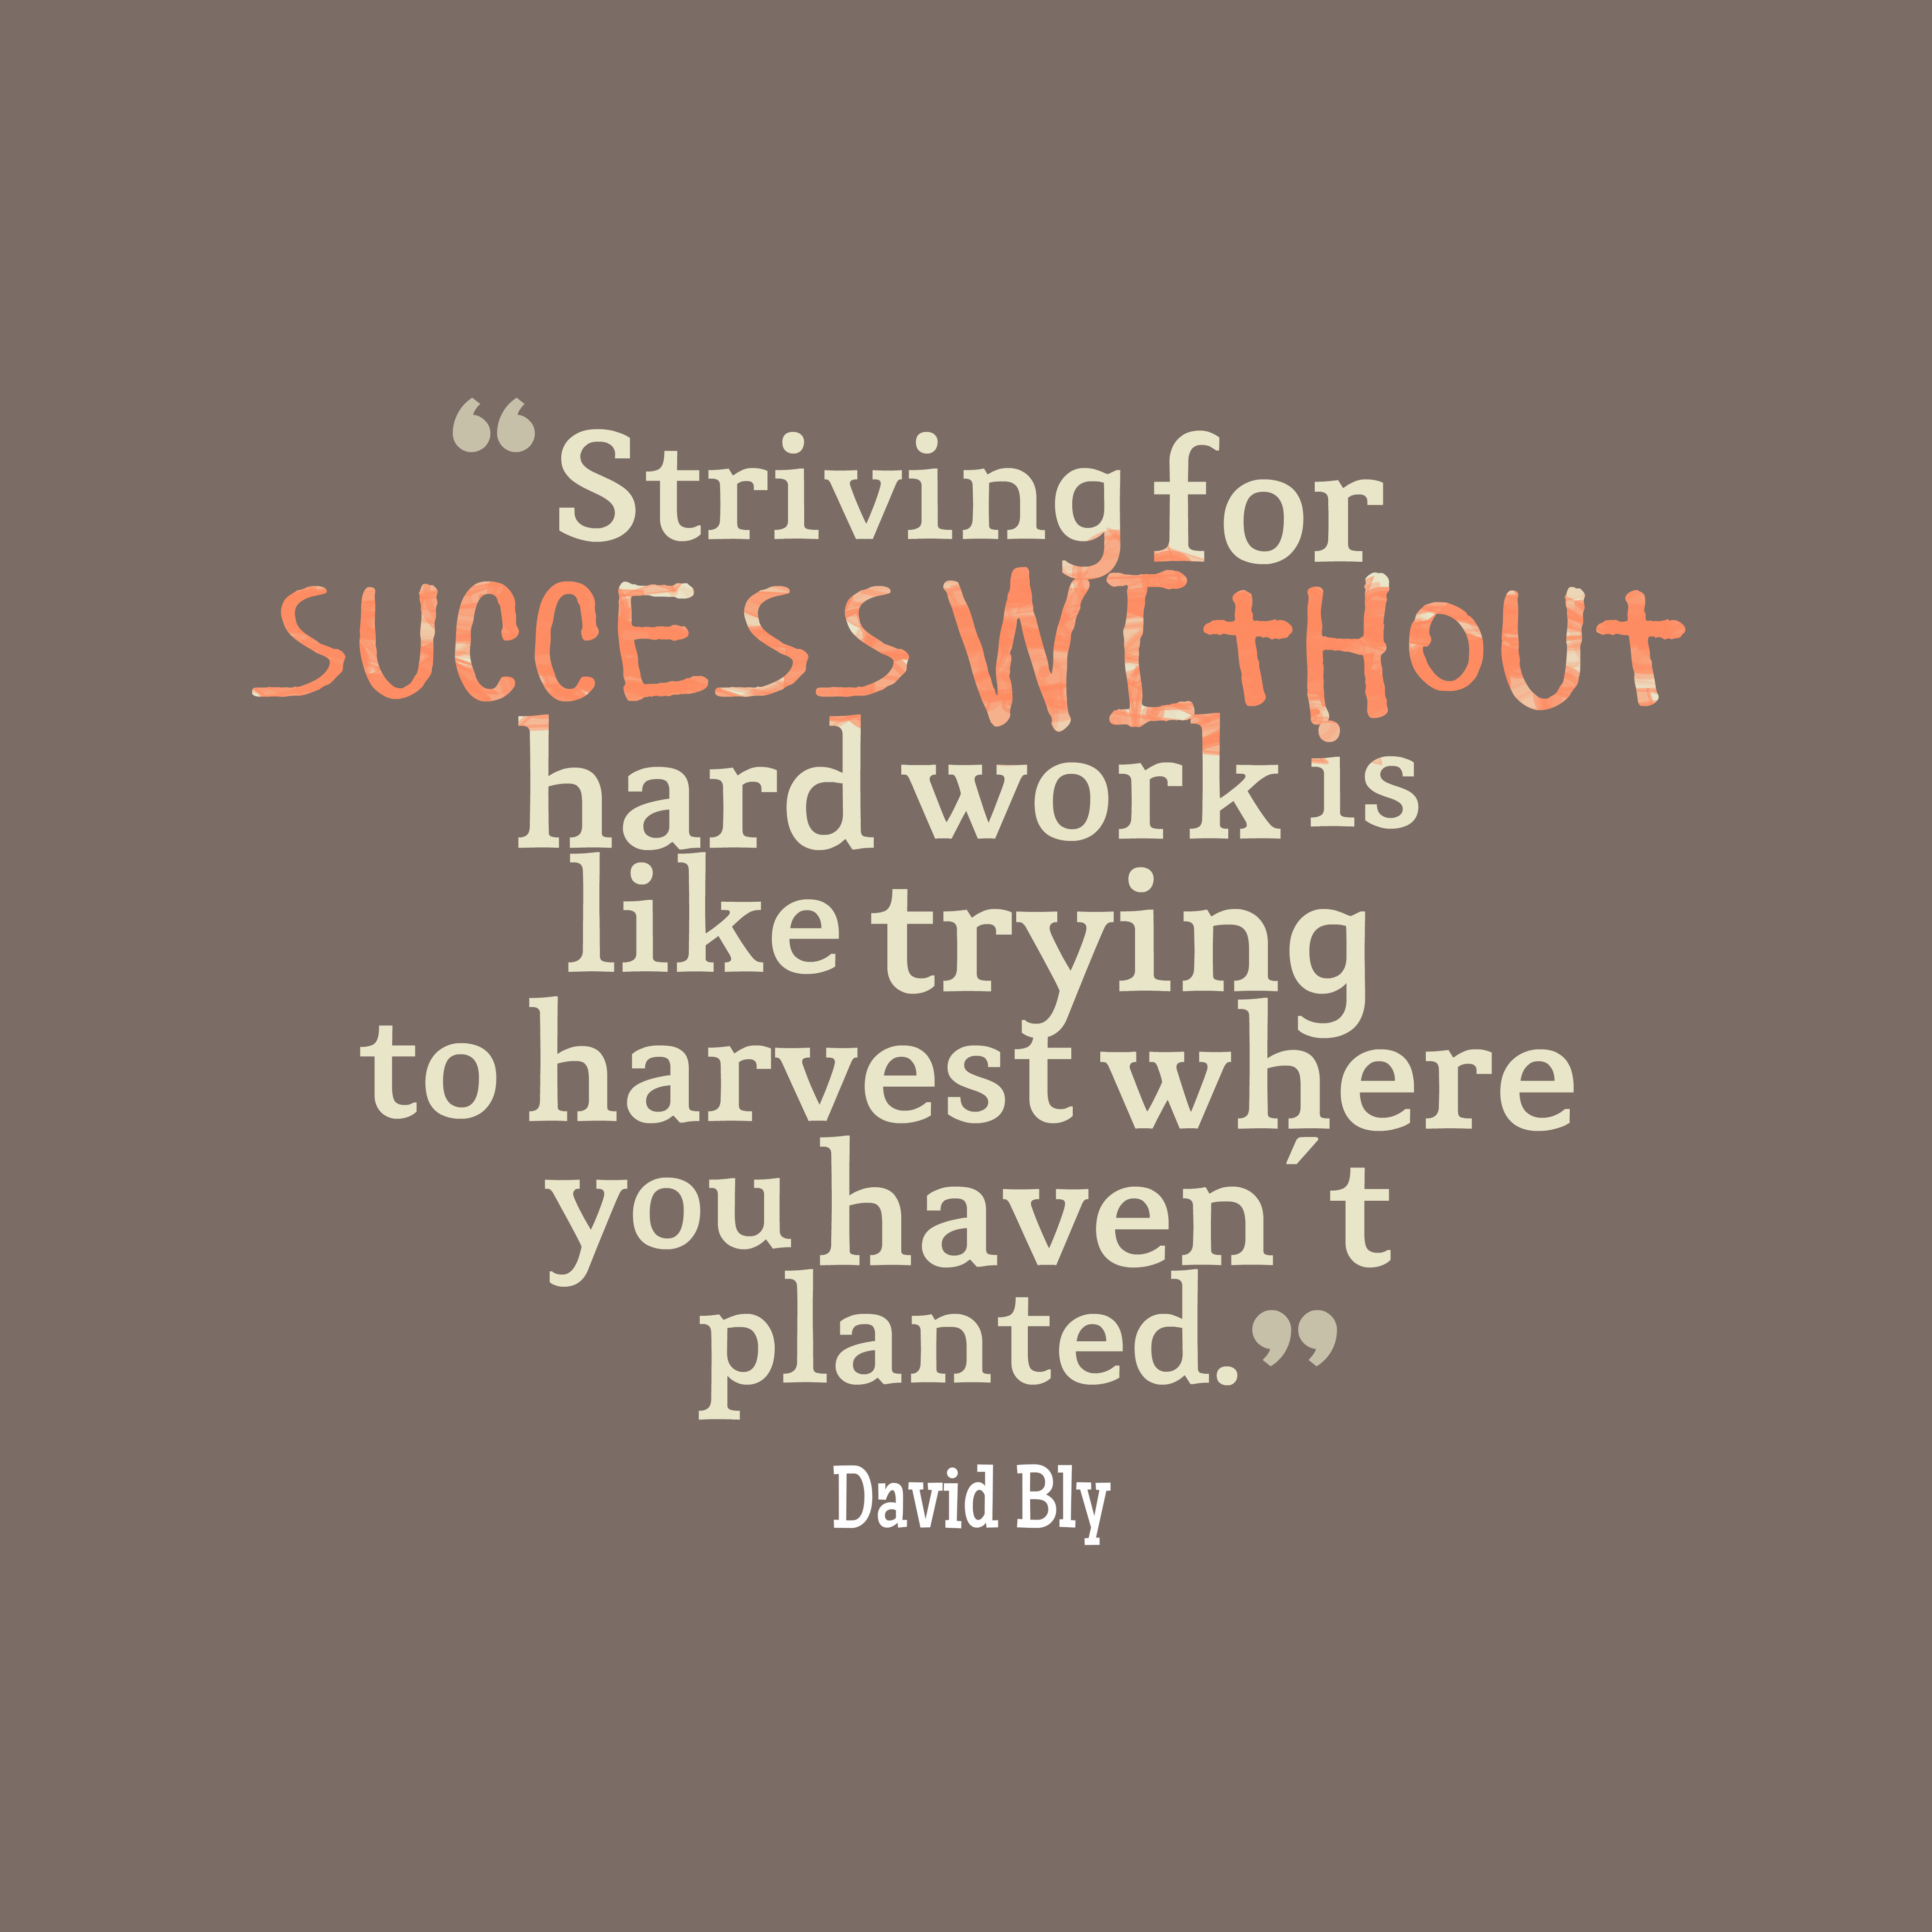 Quotes image of Striving for success without hard work is like trying to harvest where you haven't planted.